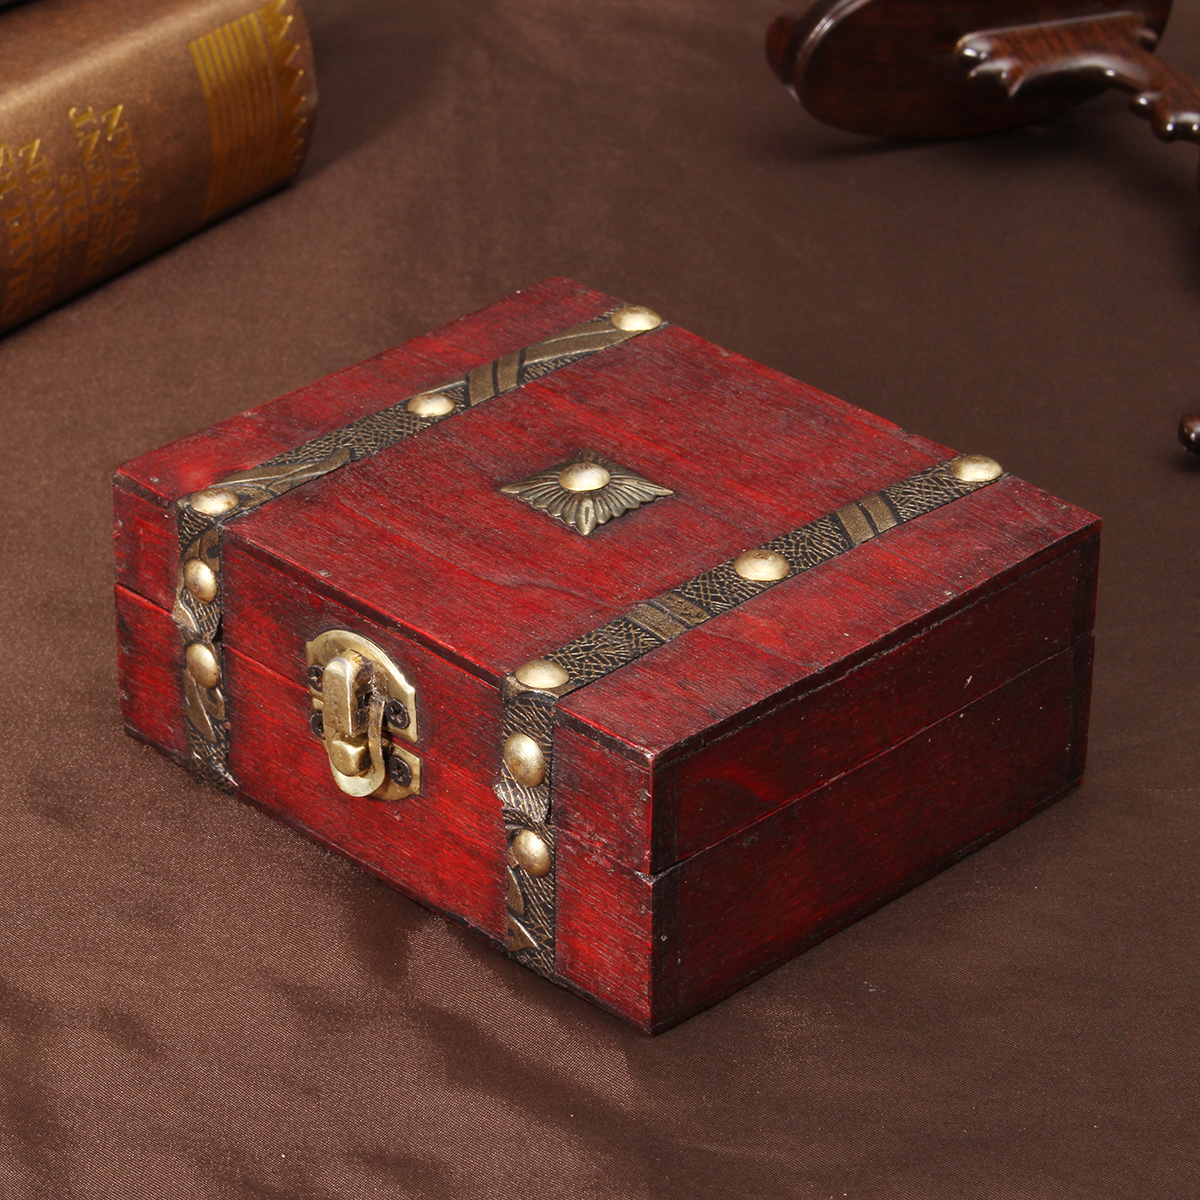 Decorative Trinket Jewelry Storage Boxes or Organizers Vintage Wooden Chest Treasure Case Cheap